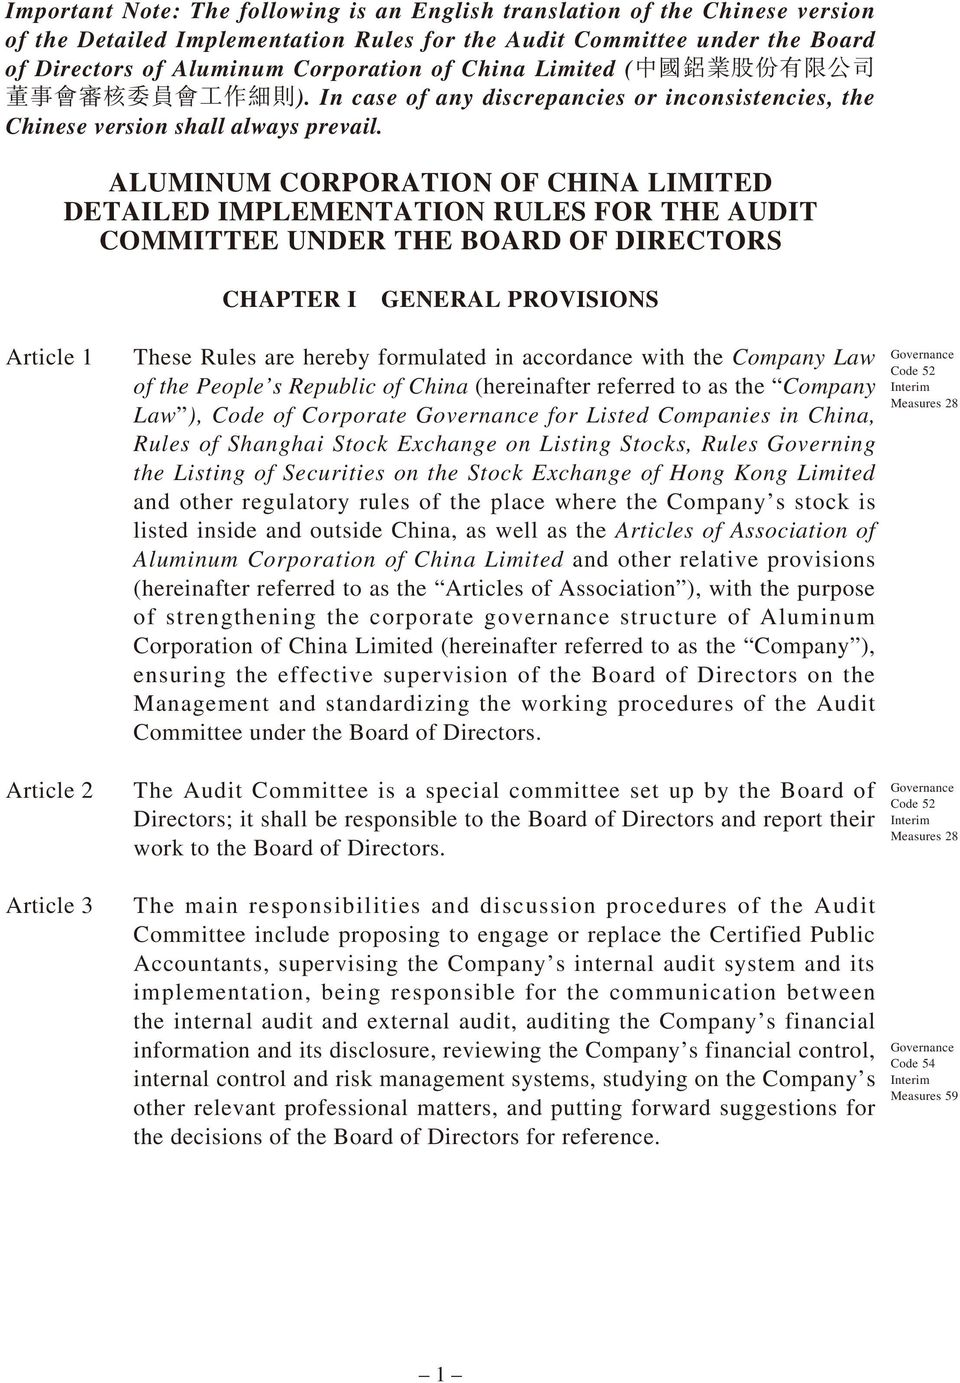 ALUMINUM CORPORATION OF CHINA LIMITED DETAILED IMPLEMENTATION RULES FOR THE AUDIT COMMITTEE UNDER THE BOARD OF DIRECTORS CHAPTER I GENERAL PROVISIONS Article 1 Article 2 Article 3 These Rules are